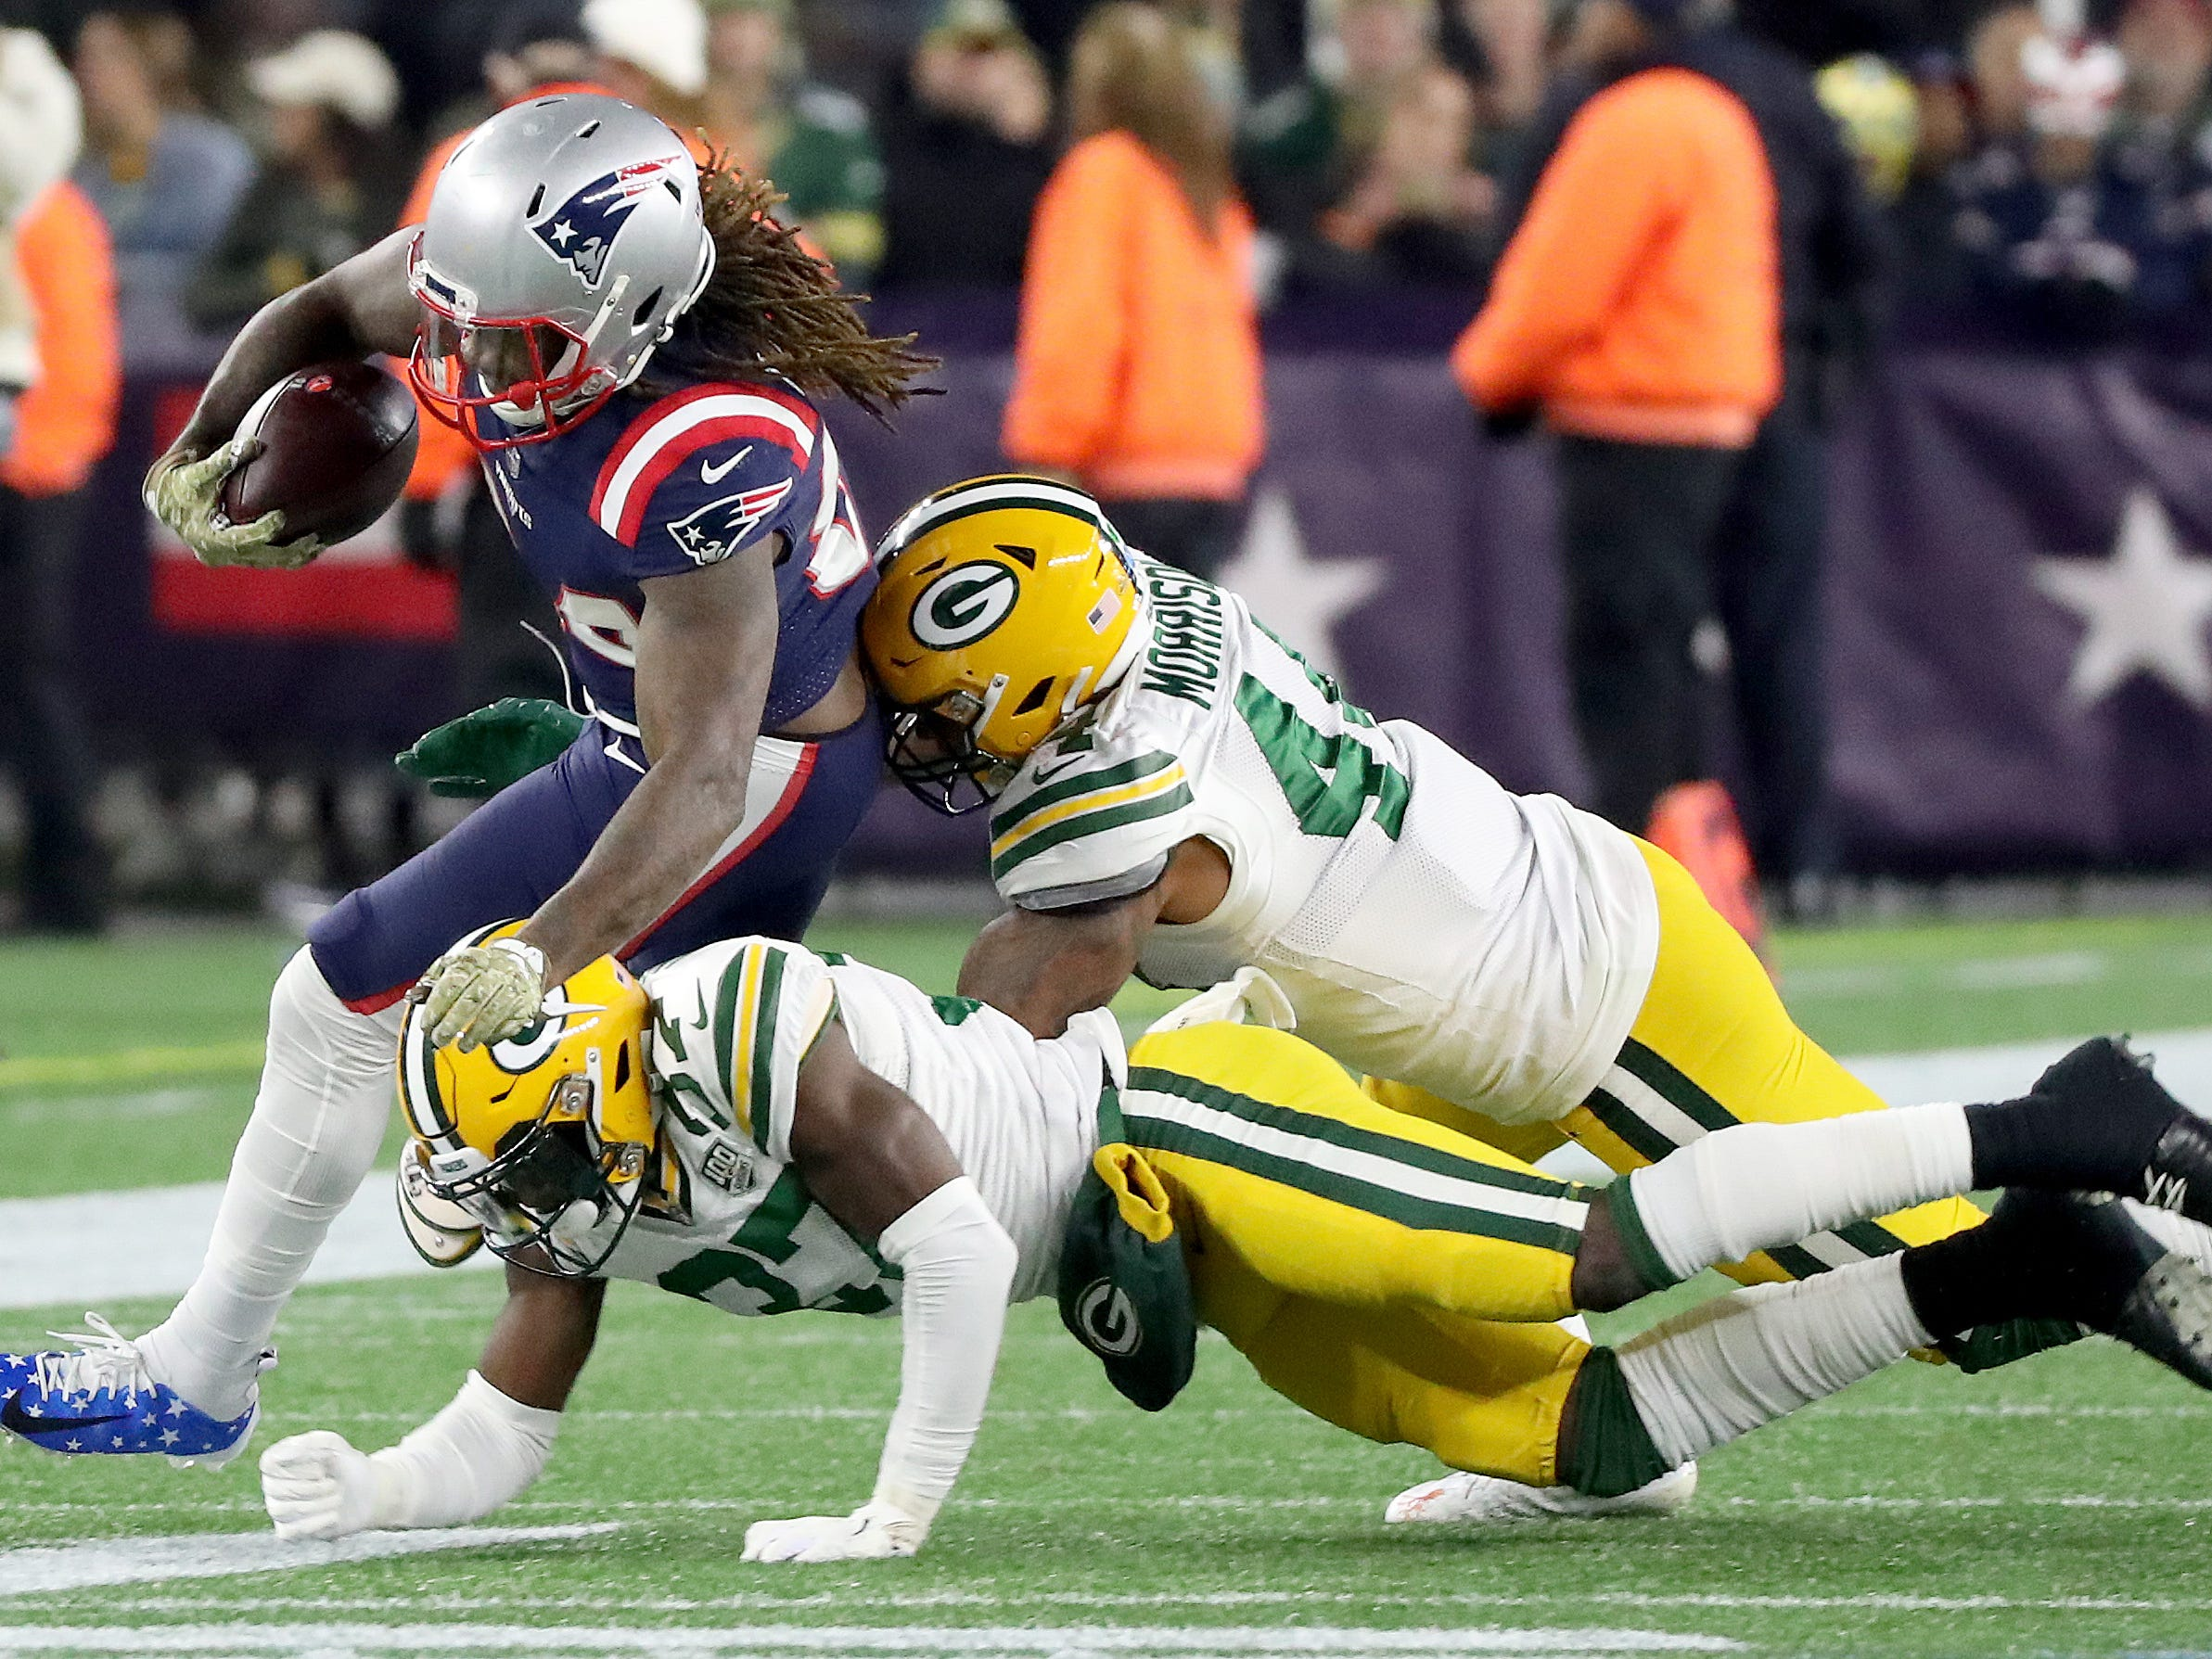 Green Bay Packers cornerback Josh Jackson (37) and inside linebacker Antonio Morrison (44) tackle wide receiver Cordarrelle Patterson (84) against the New England Patriots Sunday, November 4, 2018 at Gillette Stadium in Foxborough, Mass.